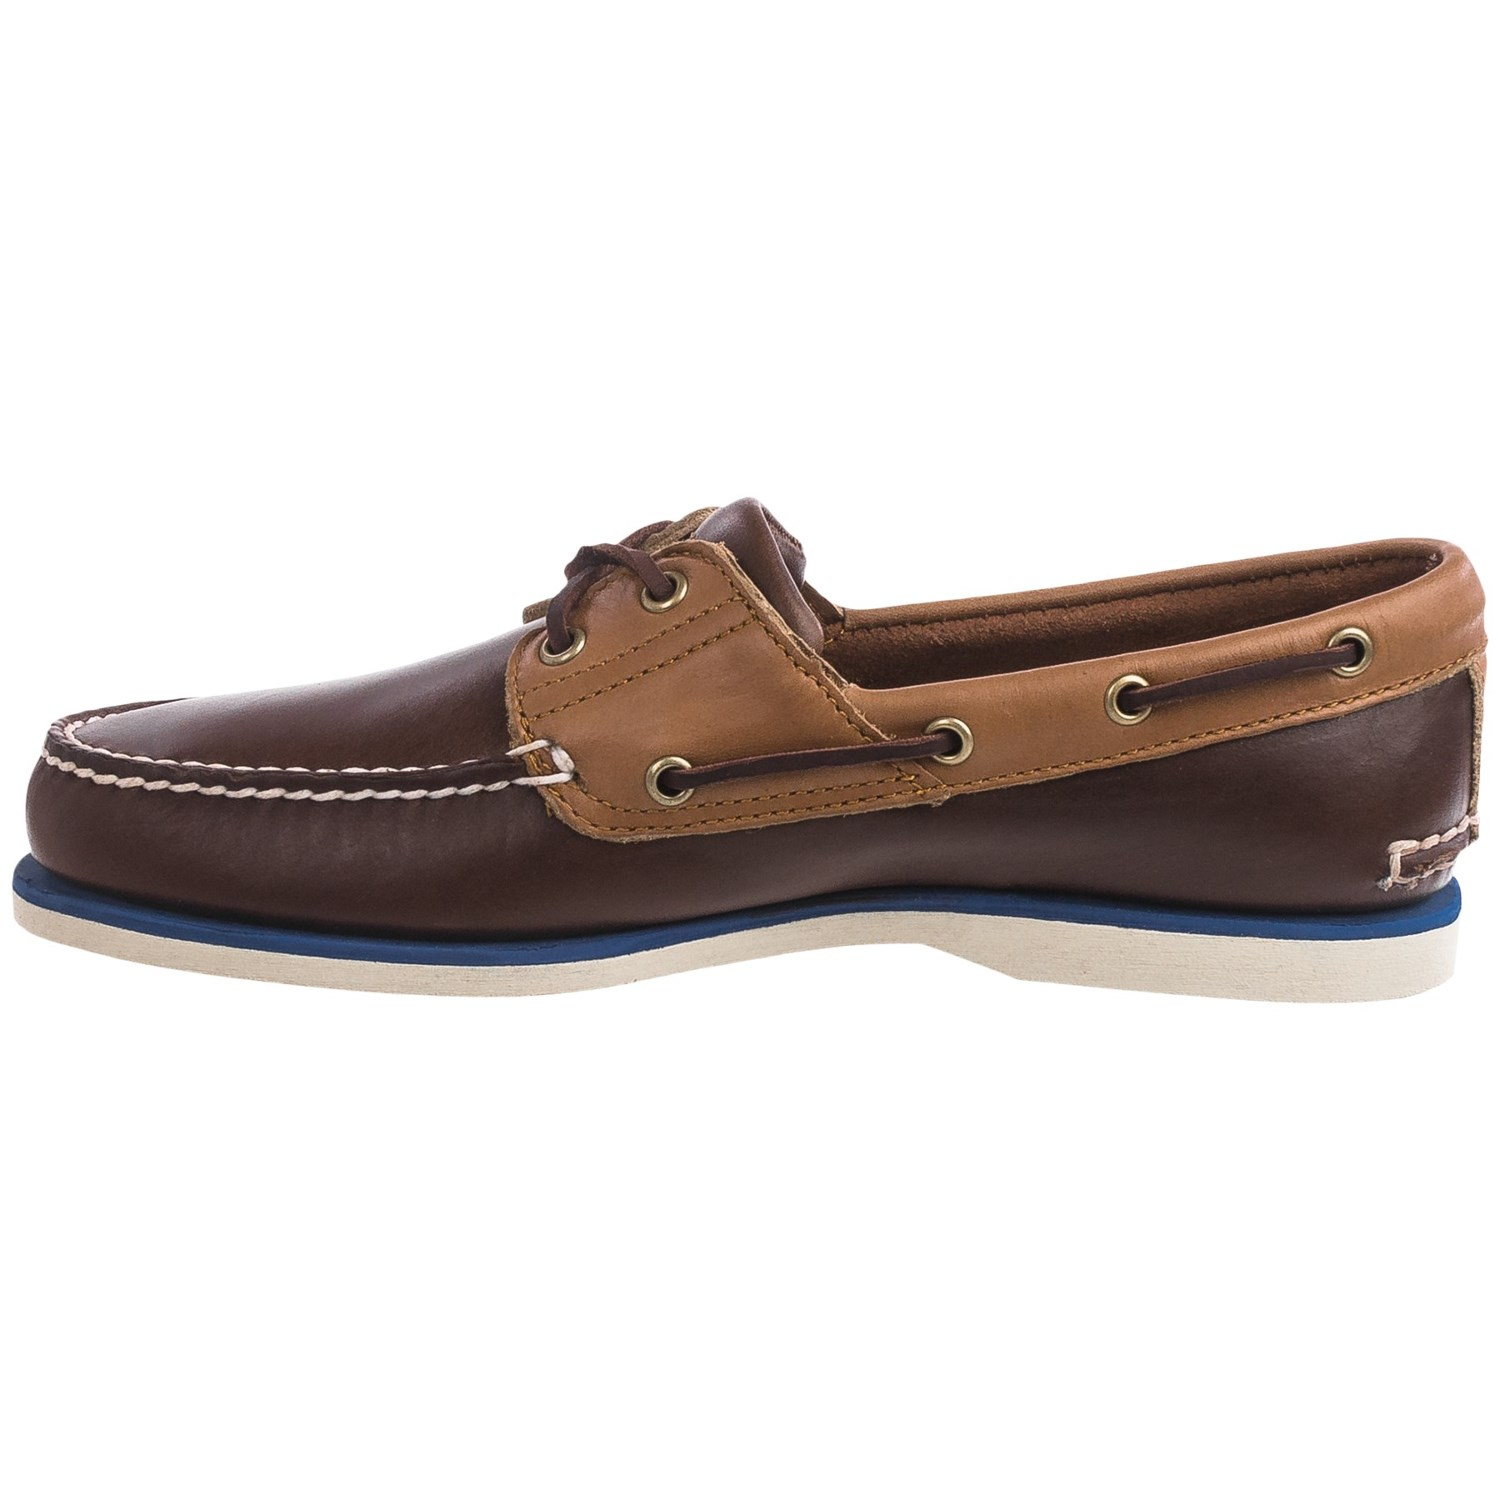 Boat Shoes Online Australia